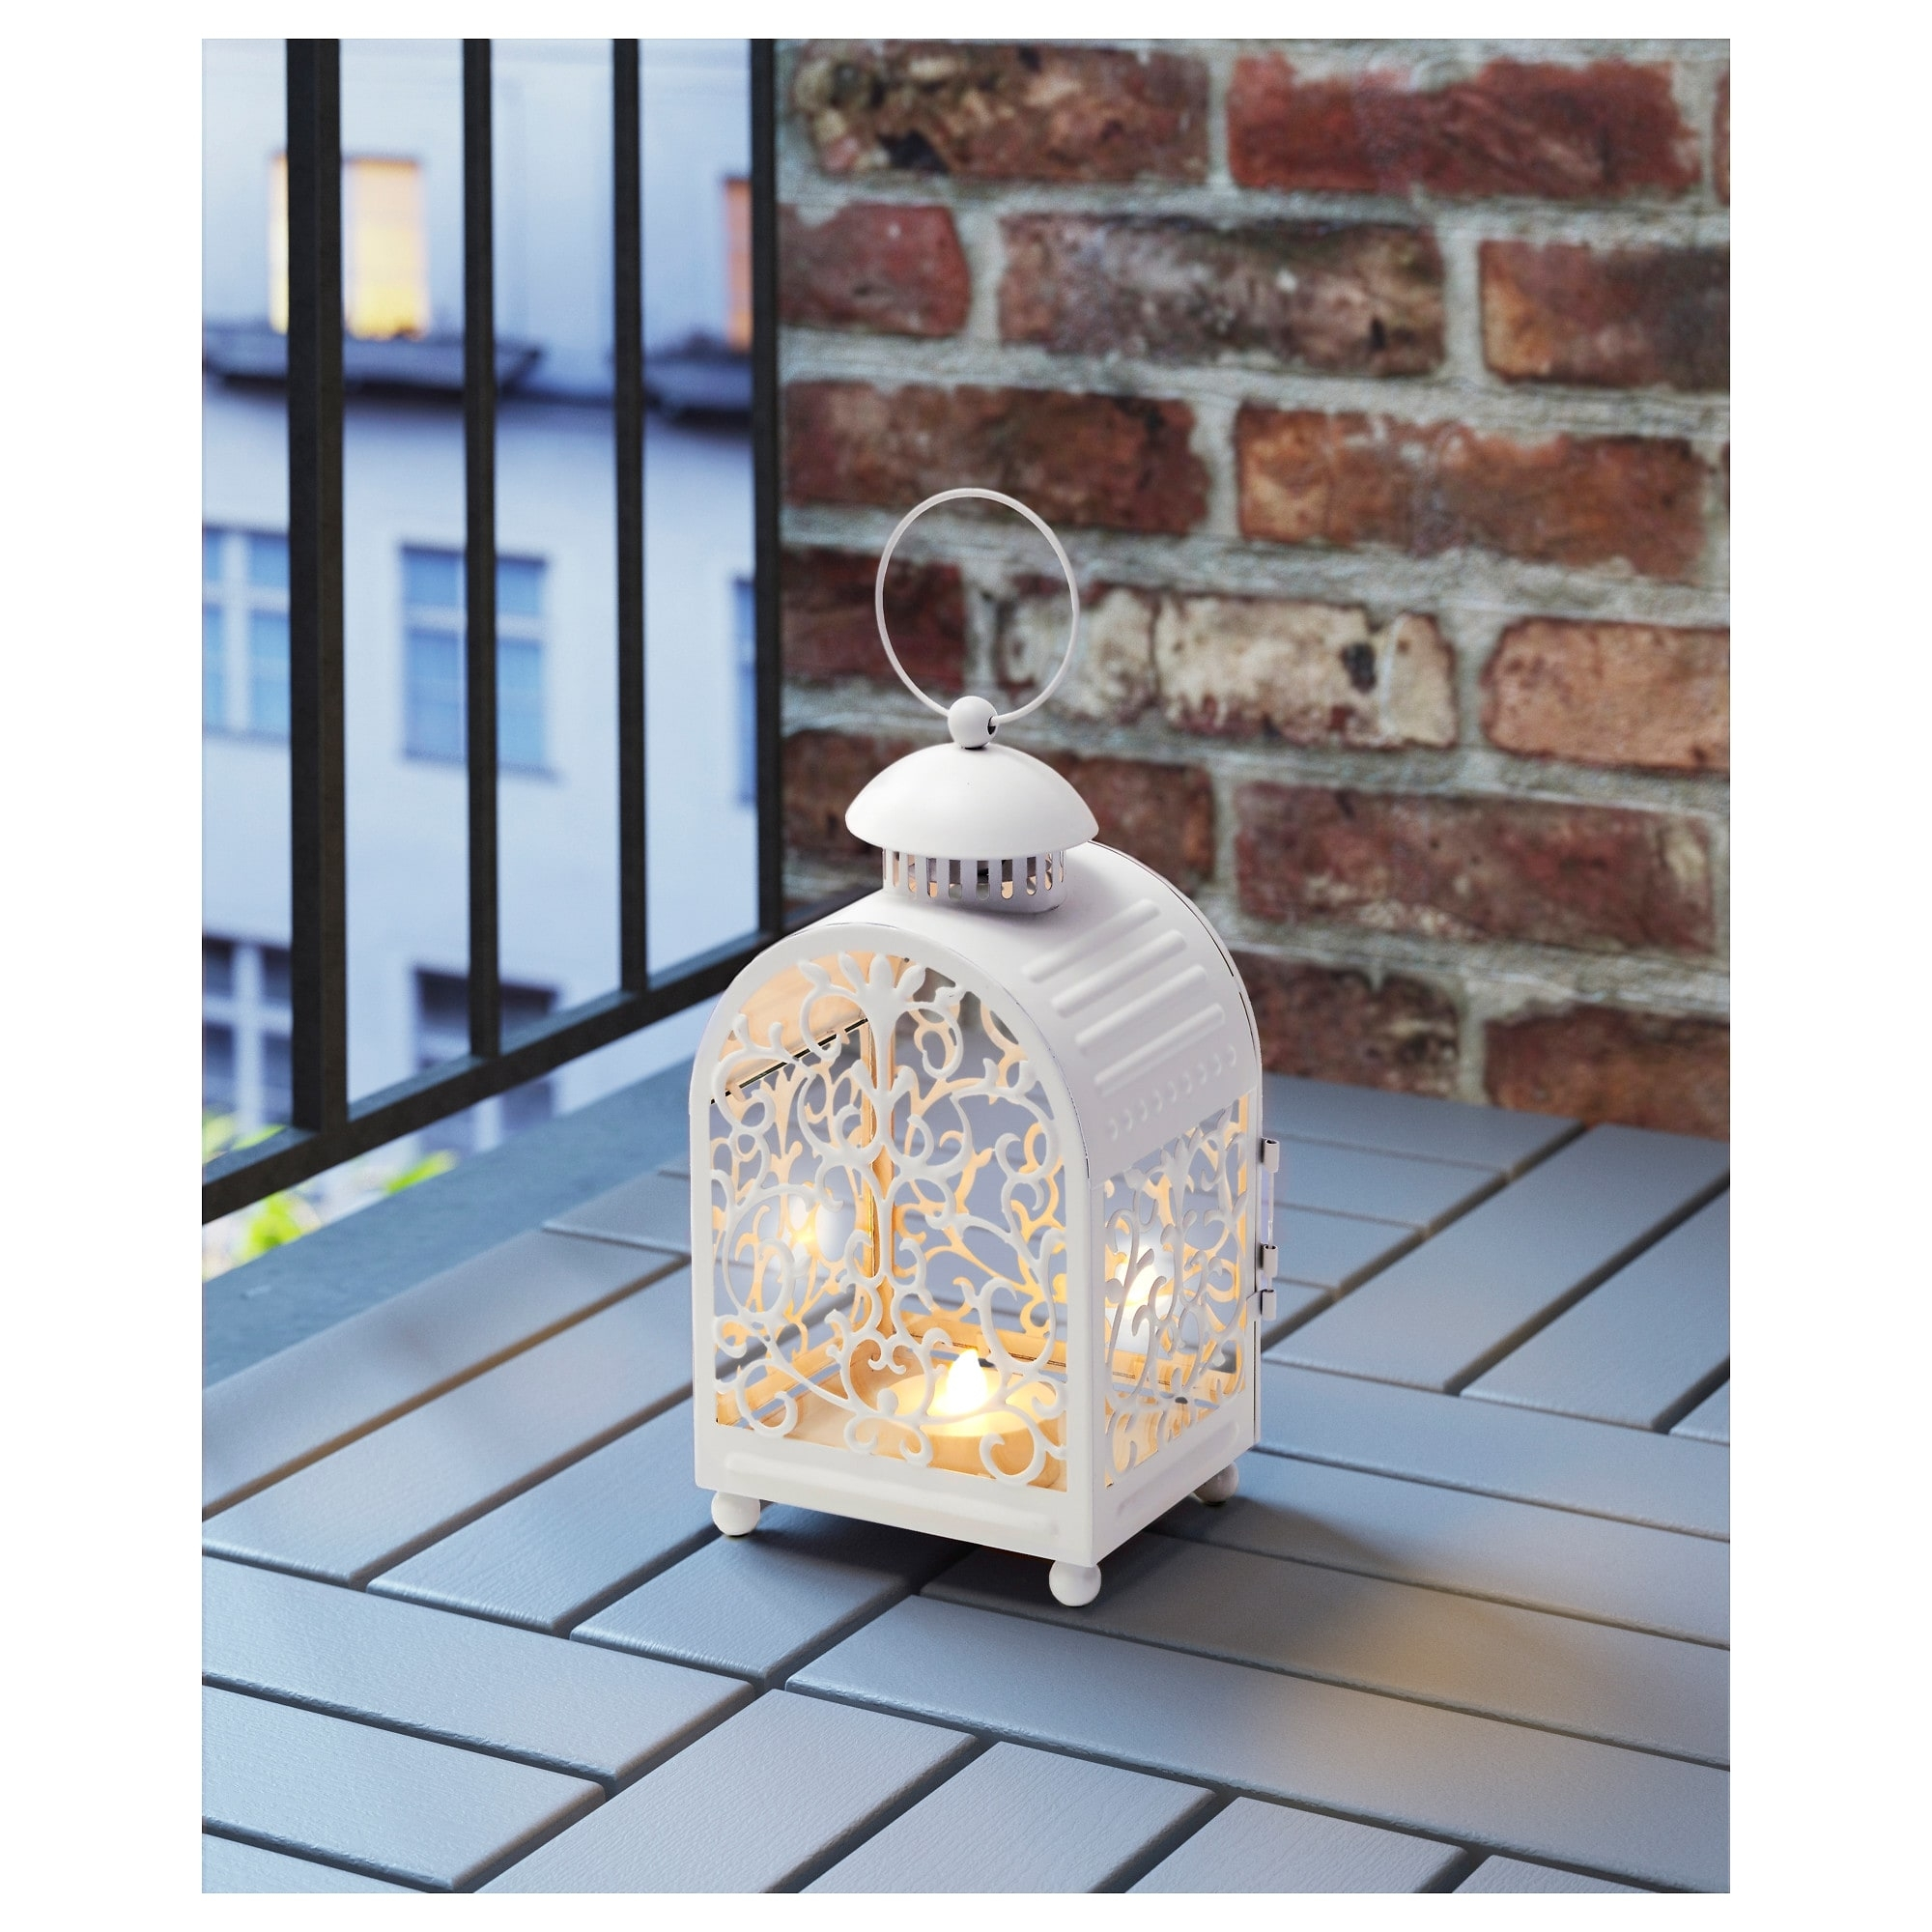 Gottgöra Lantern For Candle In Metal Cup In/outdoor White 26 Cm - Ikea intended for Ikea Outdoor Lanterns (Image 7 of 20)